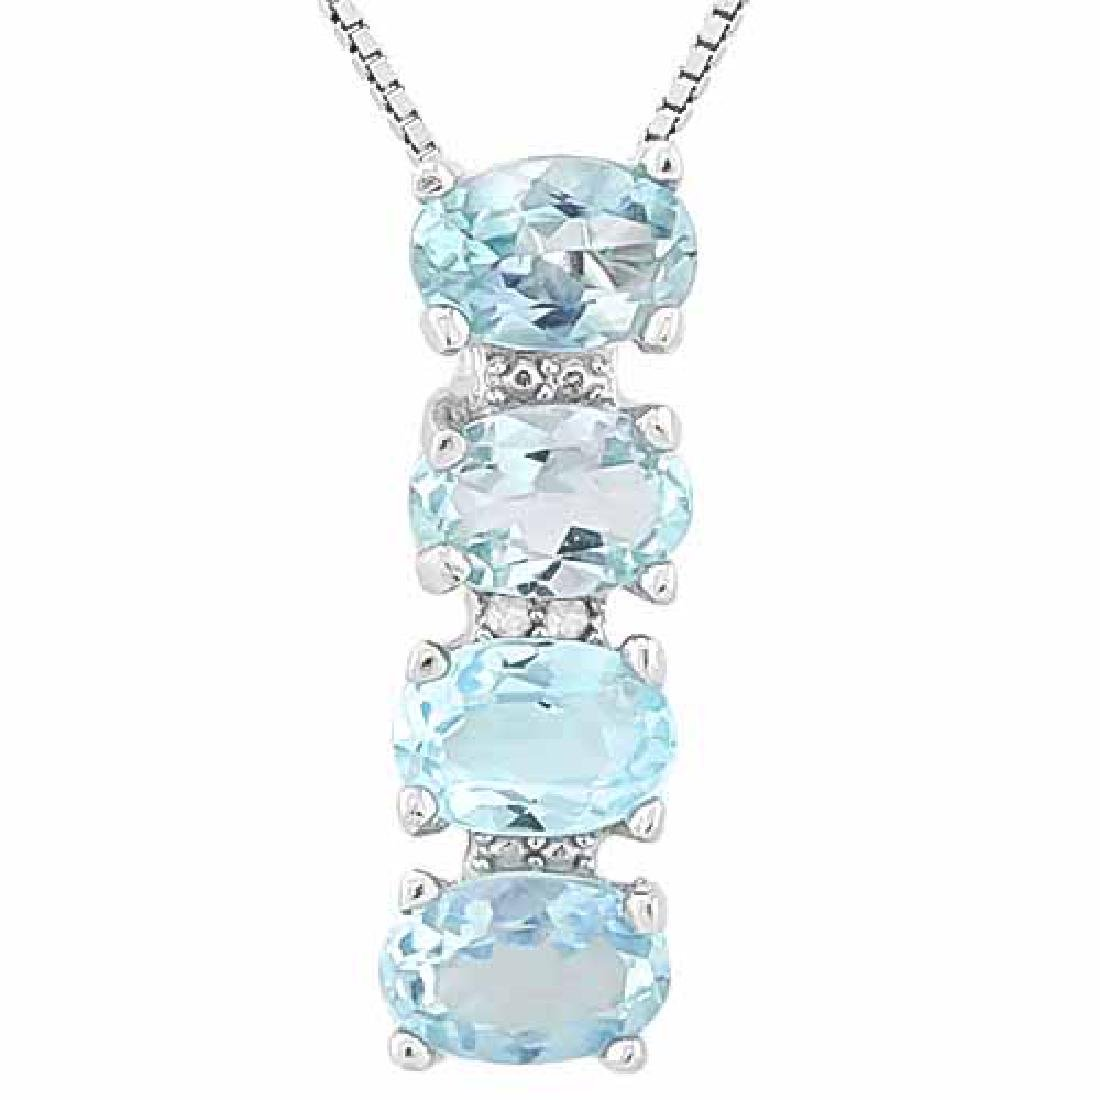 9 1/4 CARAT BABY SWISS BLUE TOPAZ 925 STERLING SILVER P